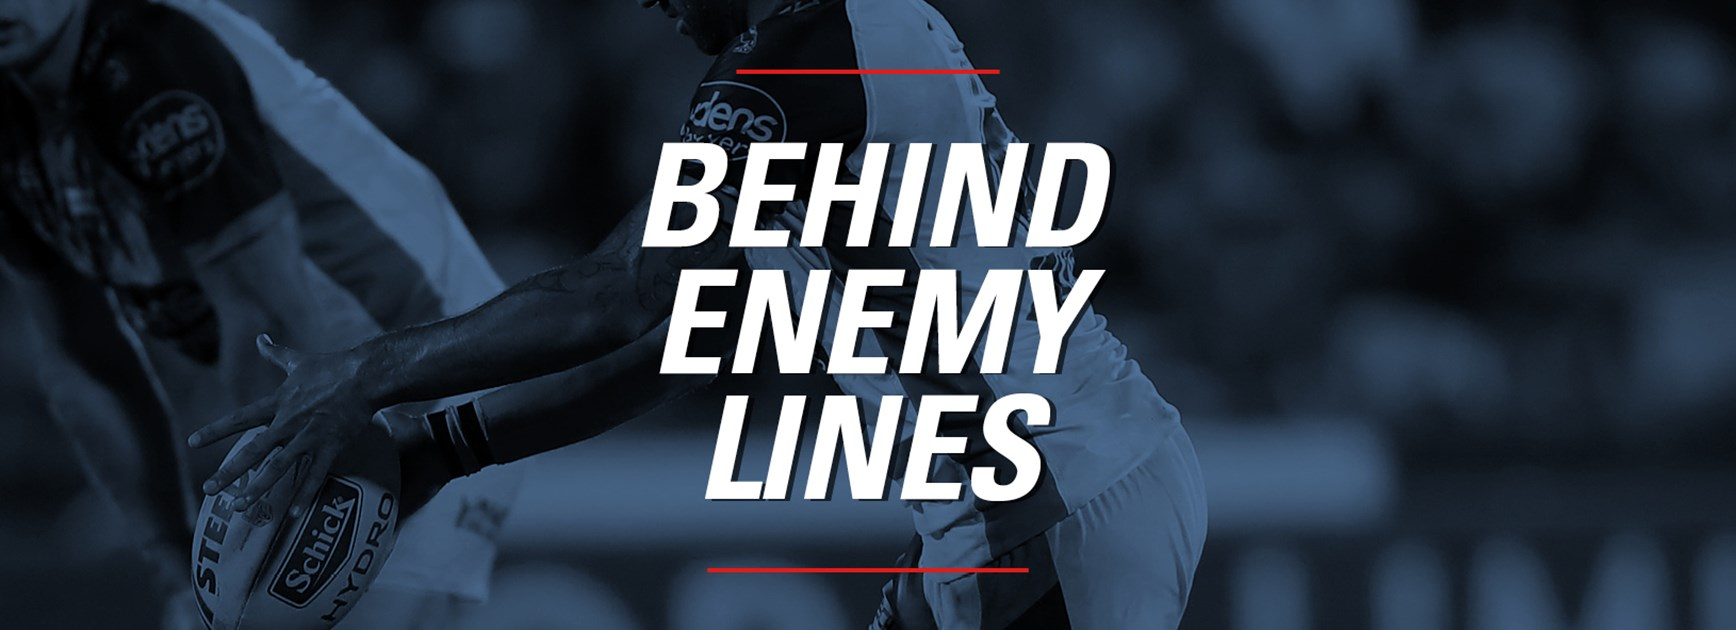 Behind Enemy Lines: Round 7